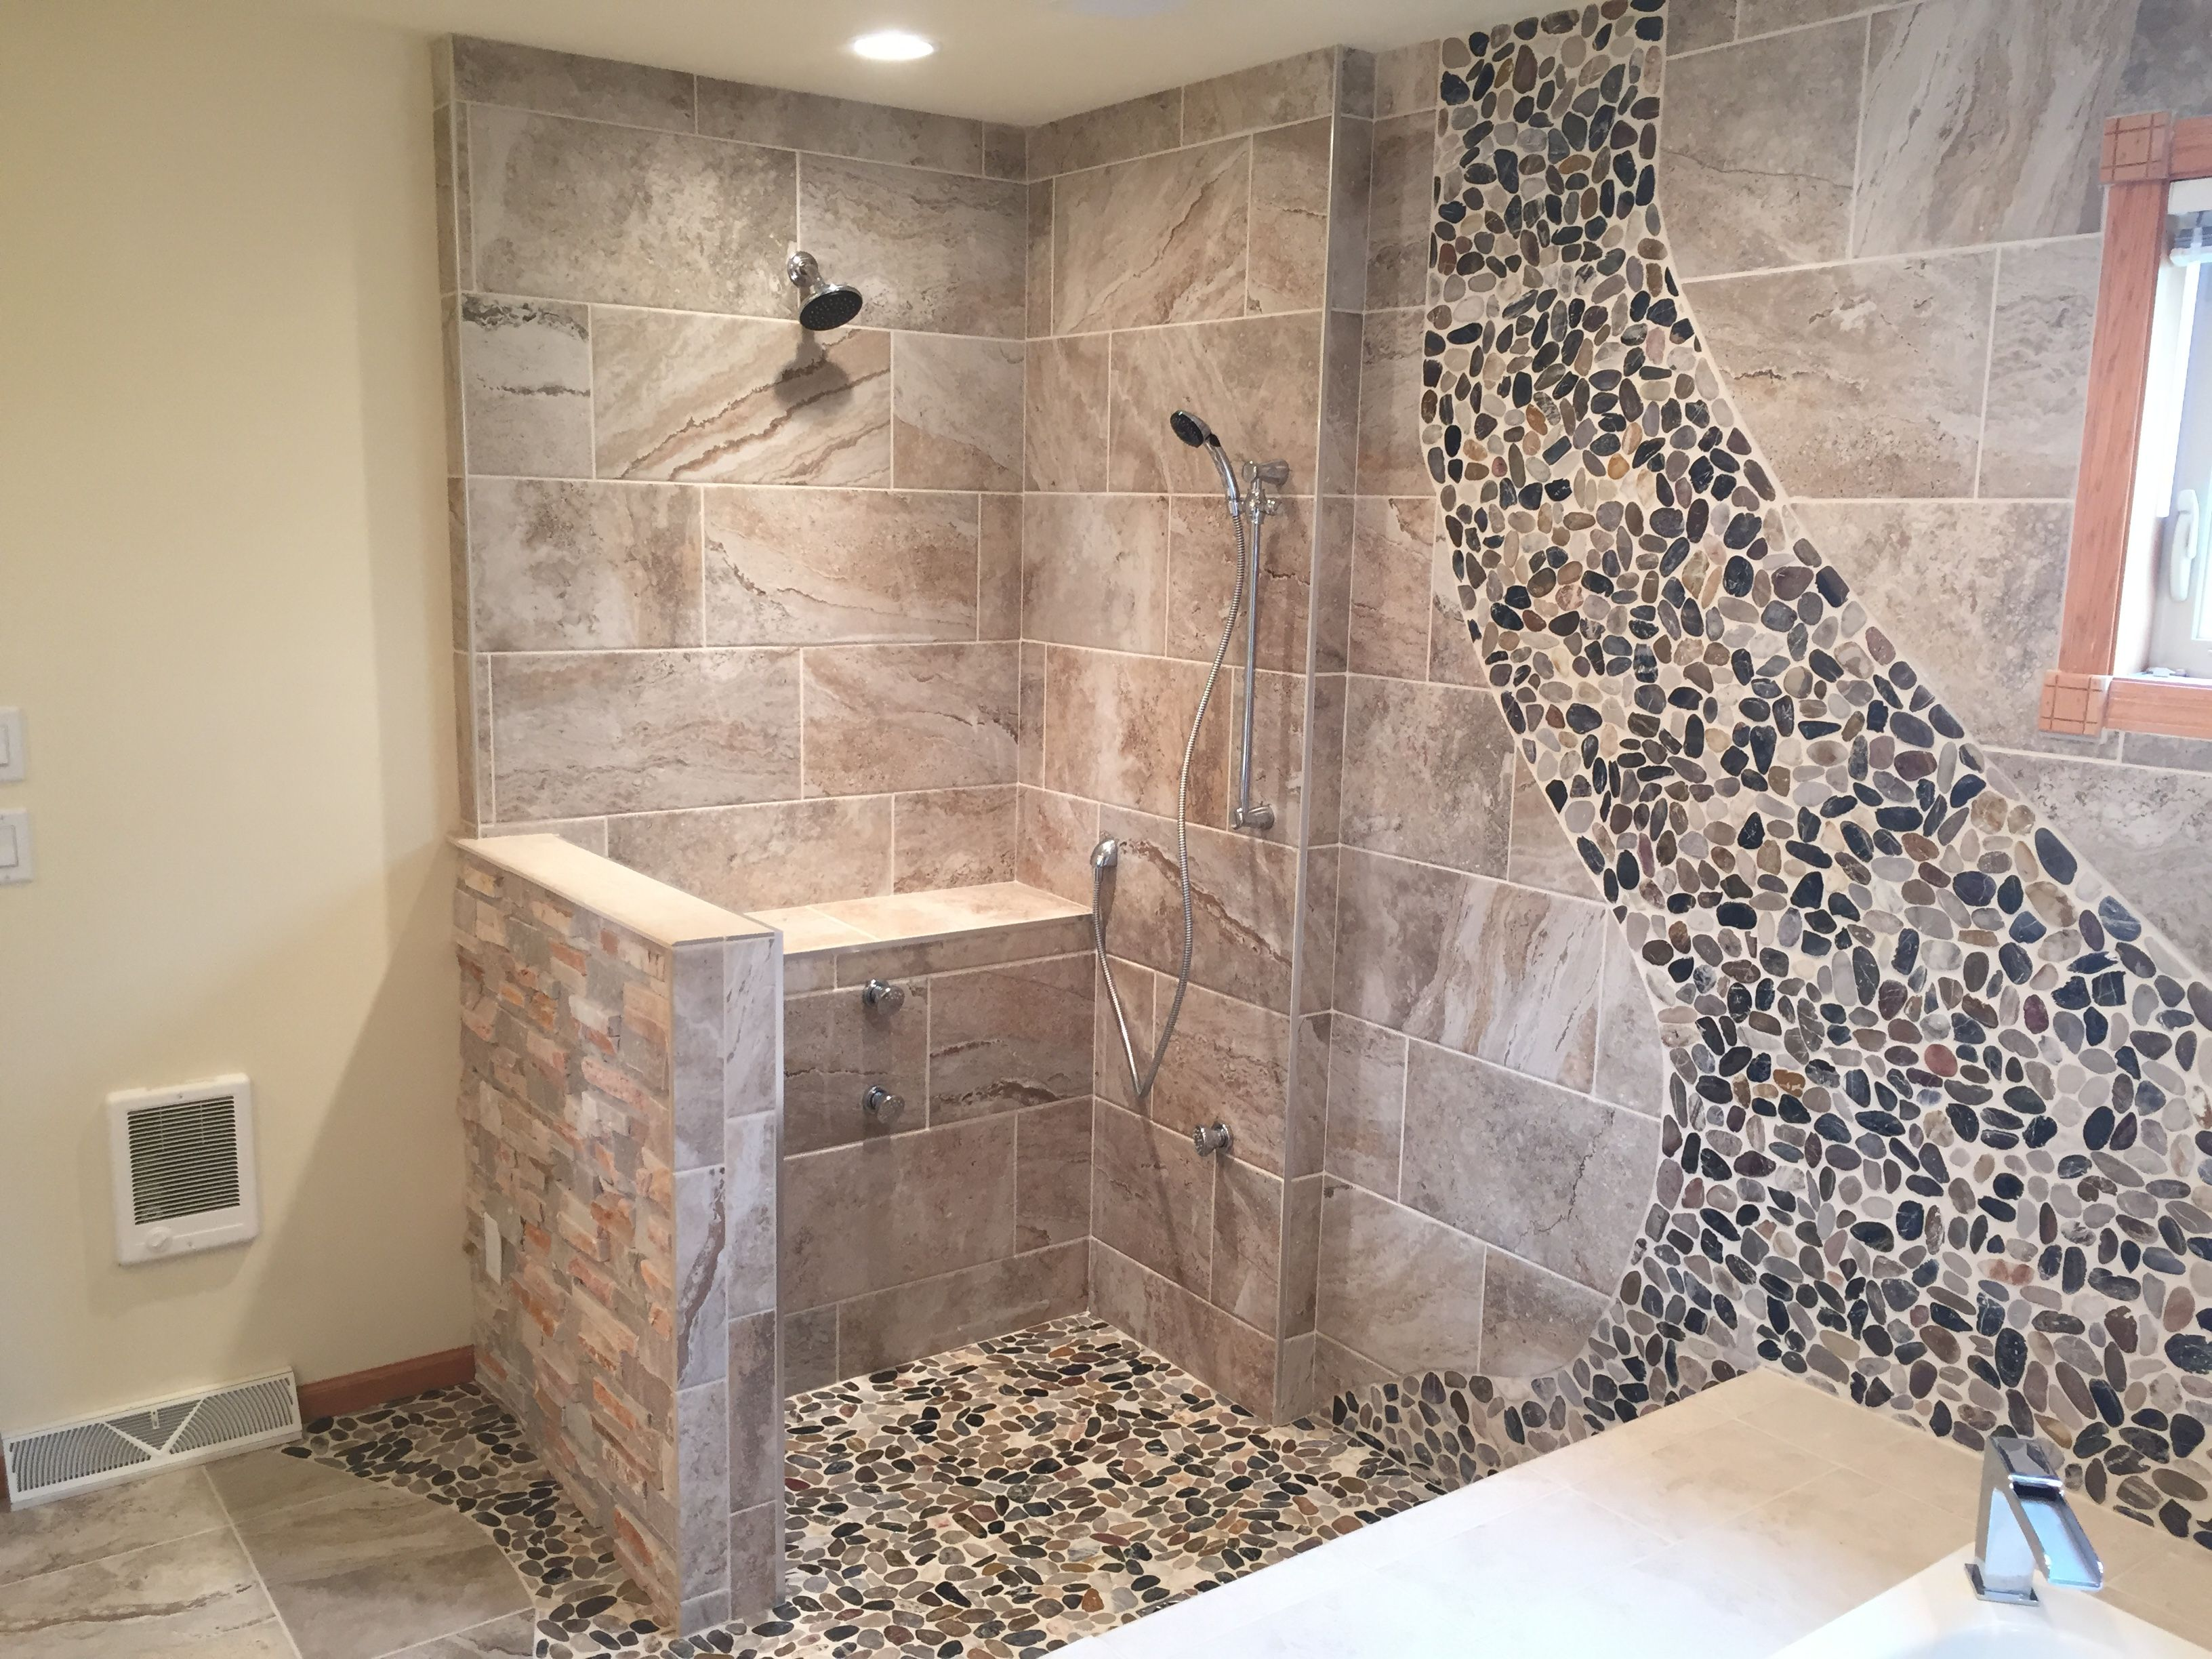 Custom Shower With Delta Leland Shower Head And Trim, Delta Body Sprays  Installed By Top